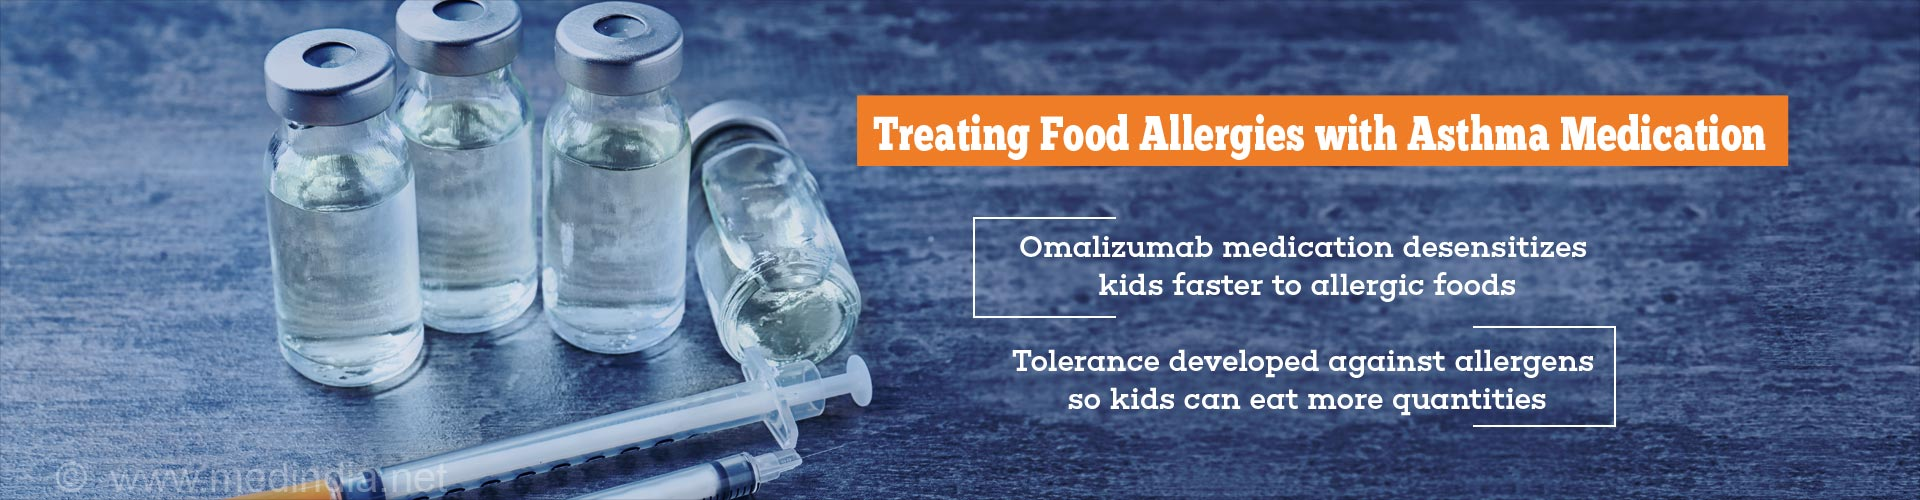 Asthma medication given along with oral immunotherapy can help children tolerate